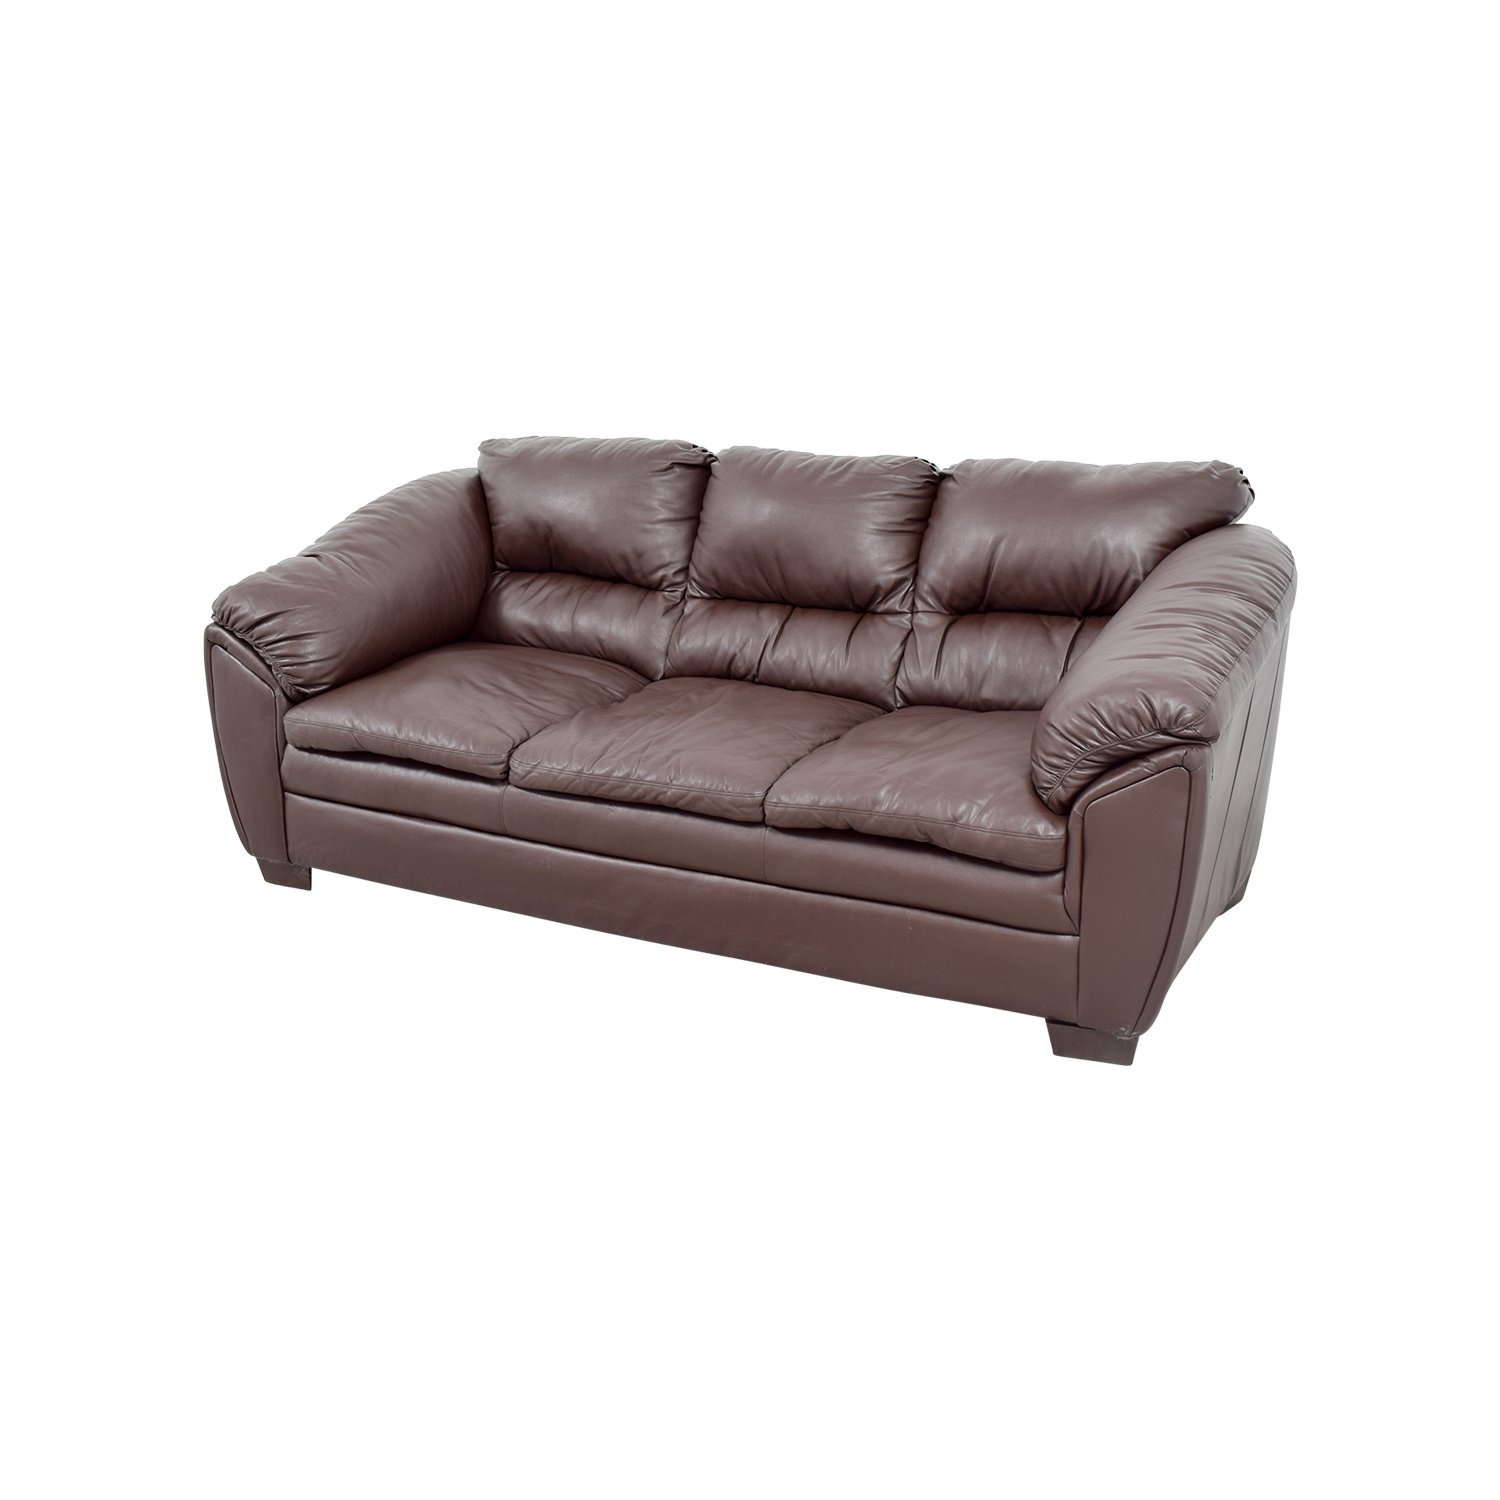 68 off brown leather sofa sofas for Classic loveseat